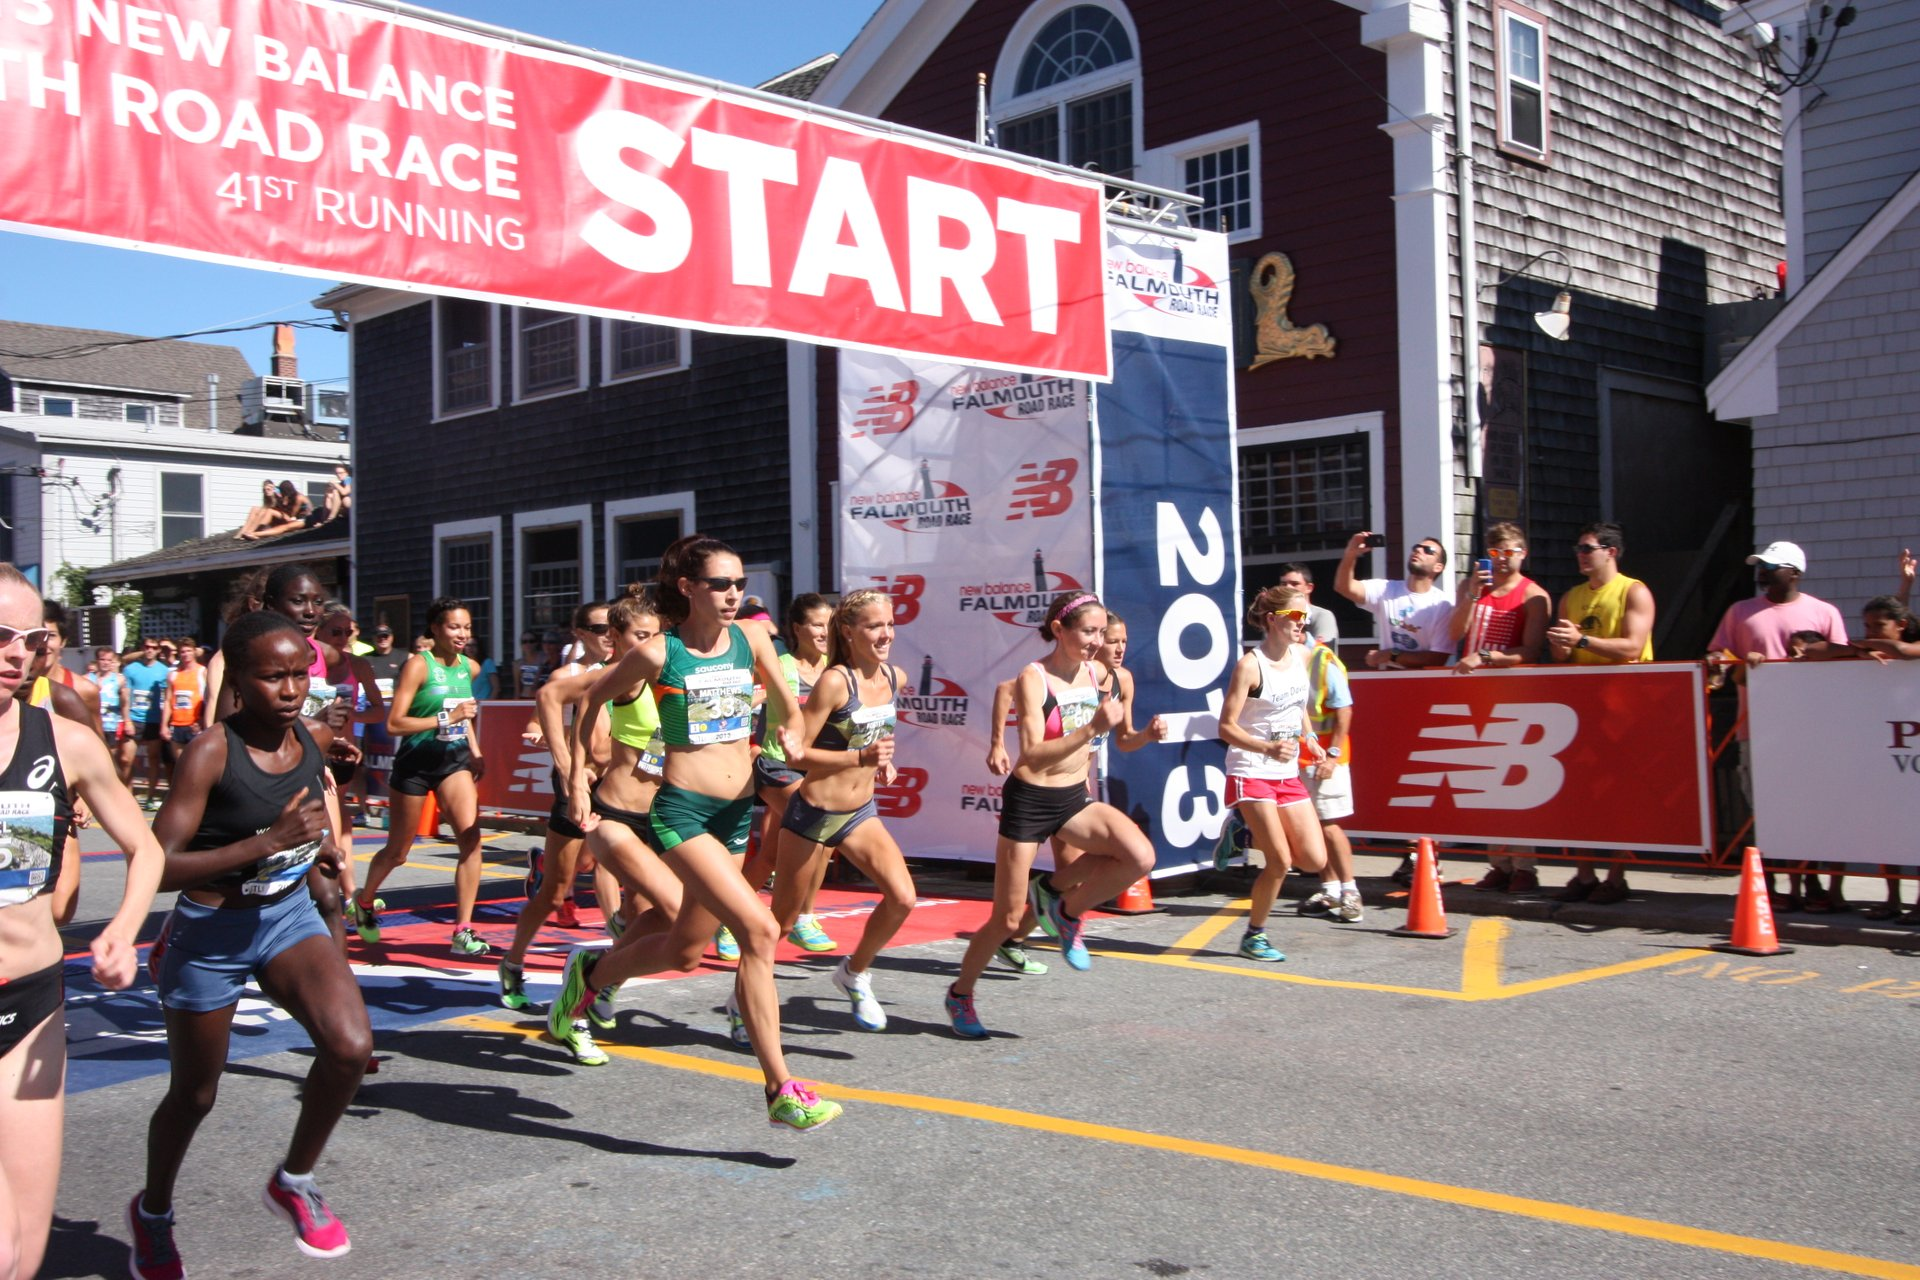 Falmouth Road Race in Massachusetts 2020 - Best Time